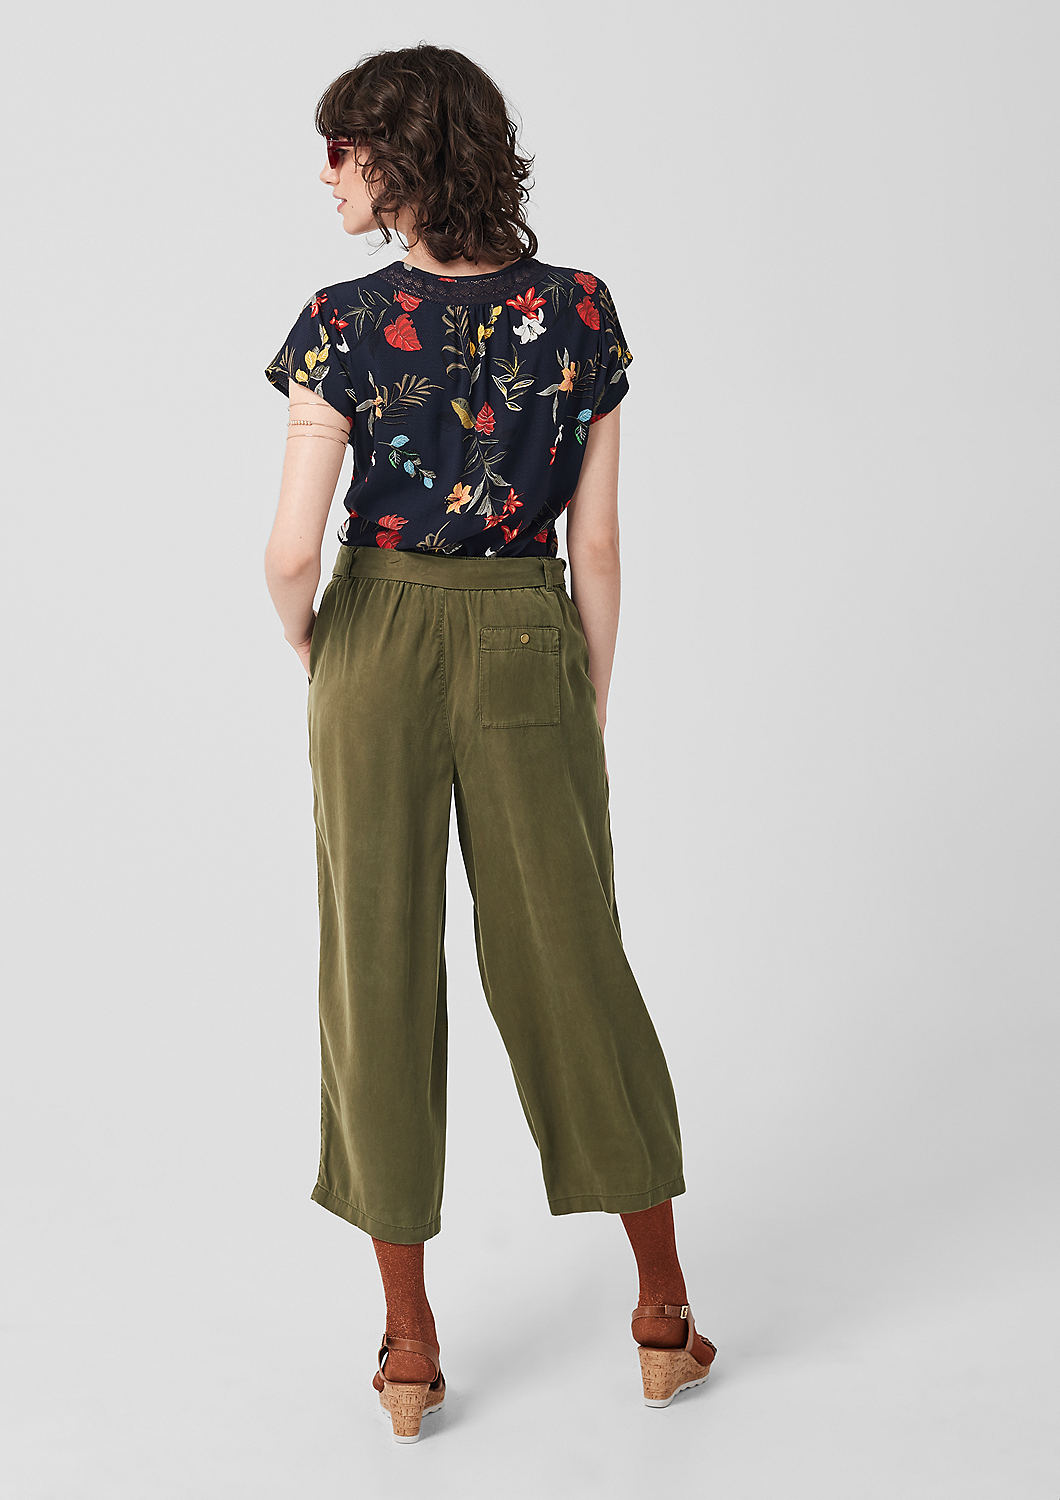 s.Oliver - Culotte: Twillhose aus Lyocell - 3